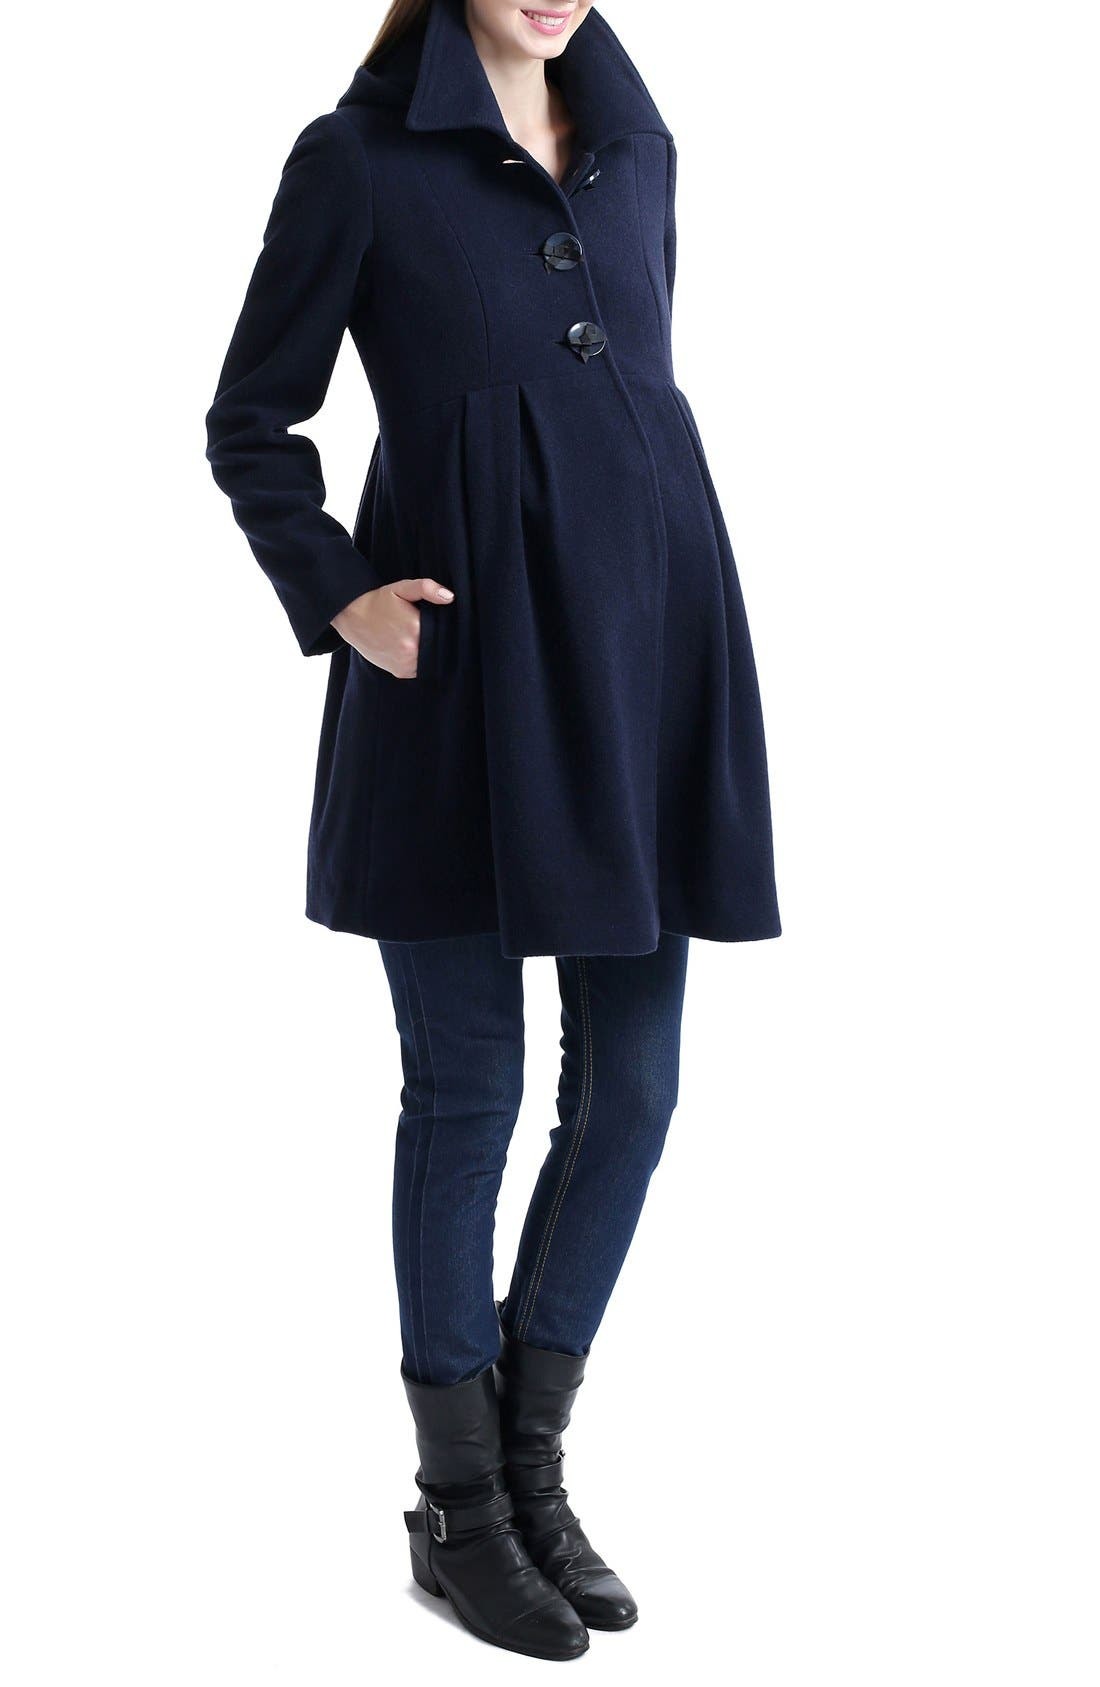 Main Image - Kimi and Kai Faye Hooded Maternity Peacoat